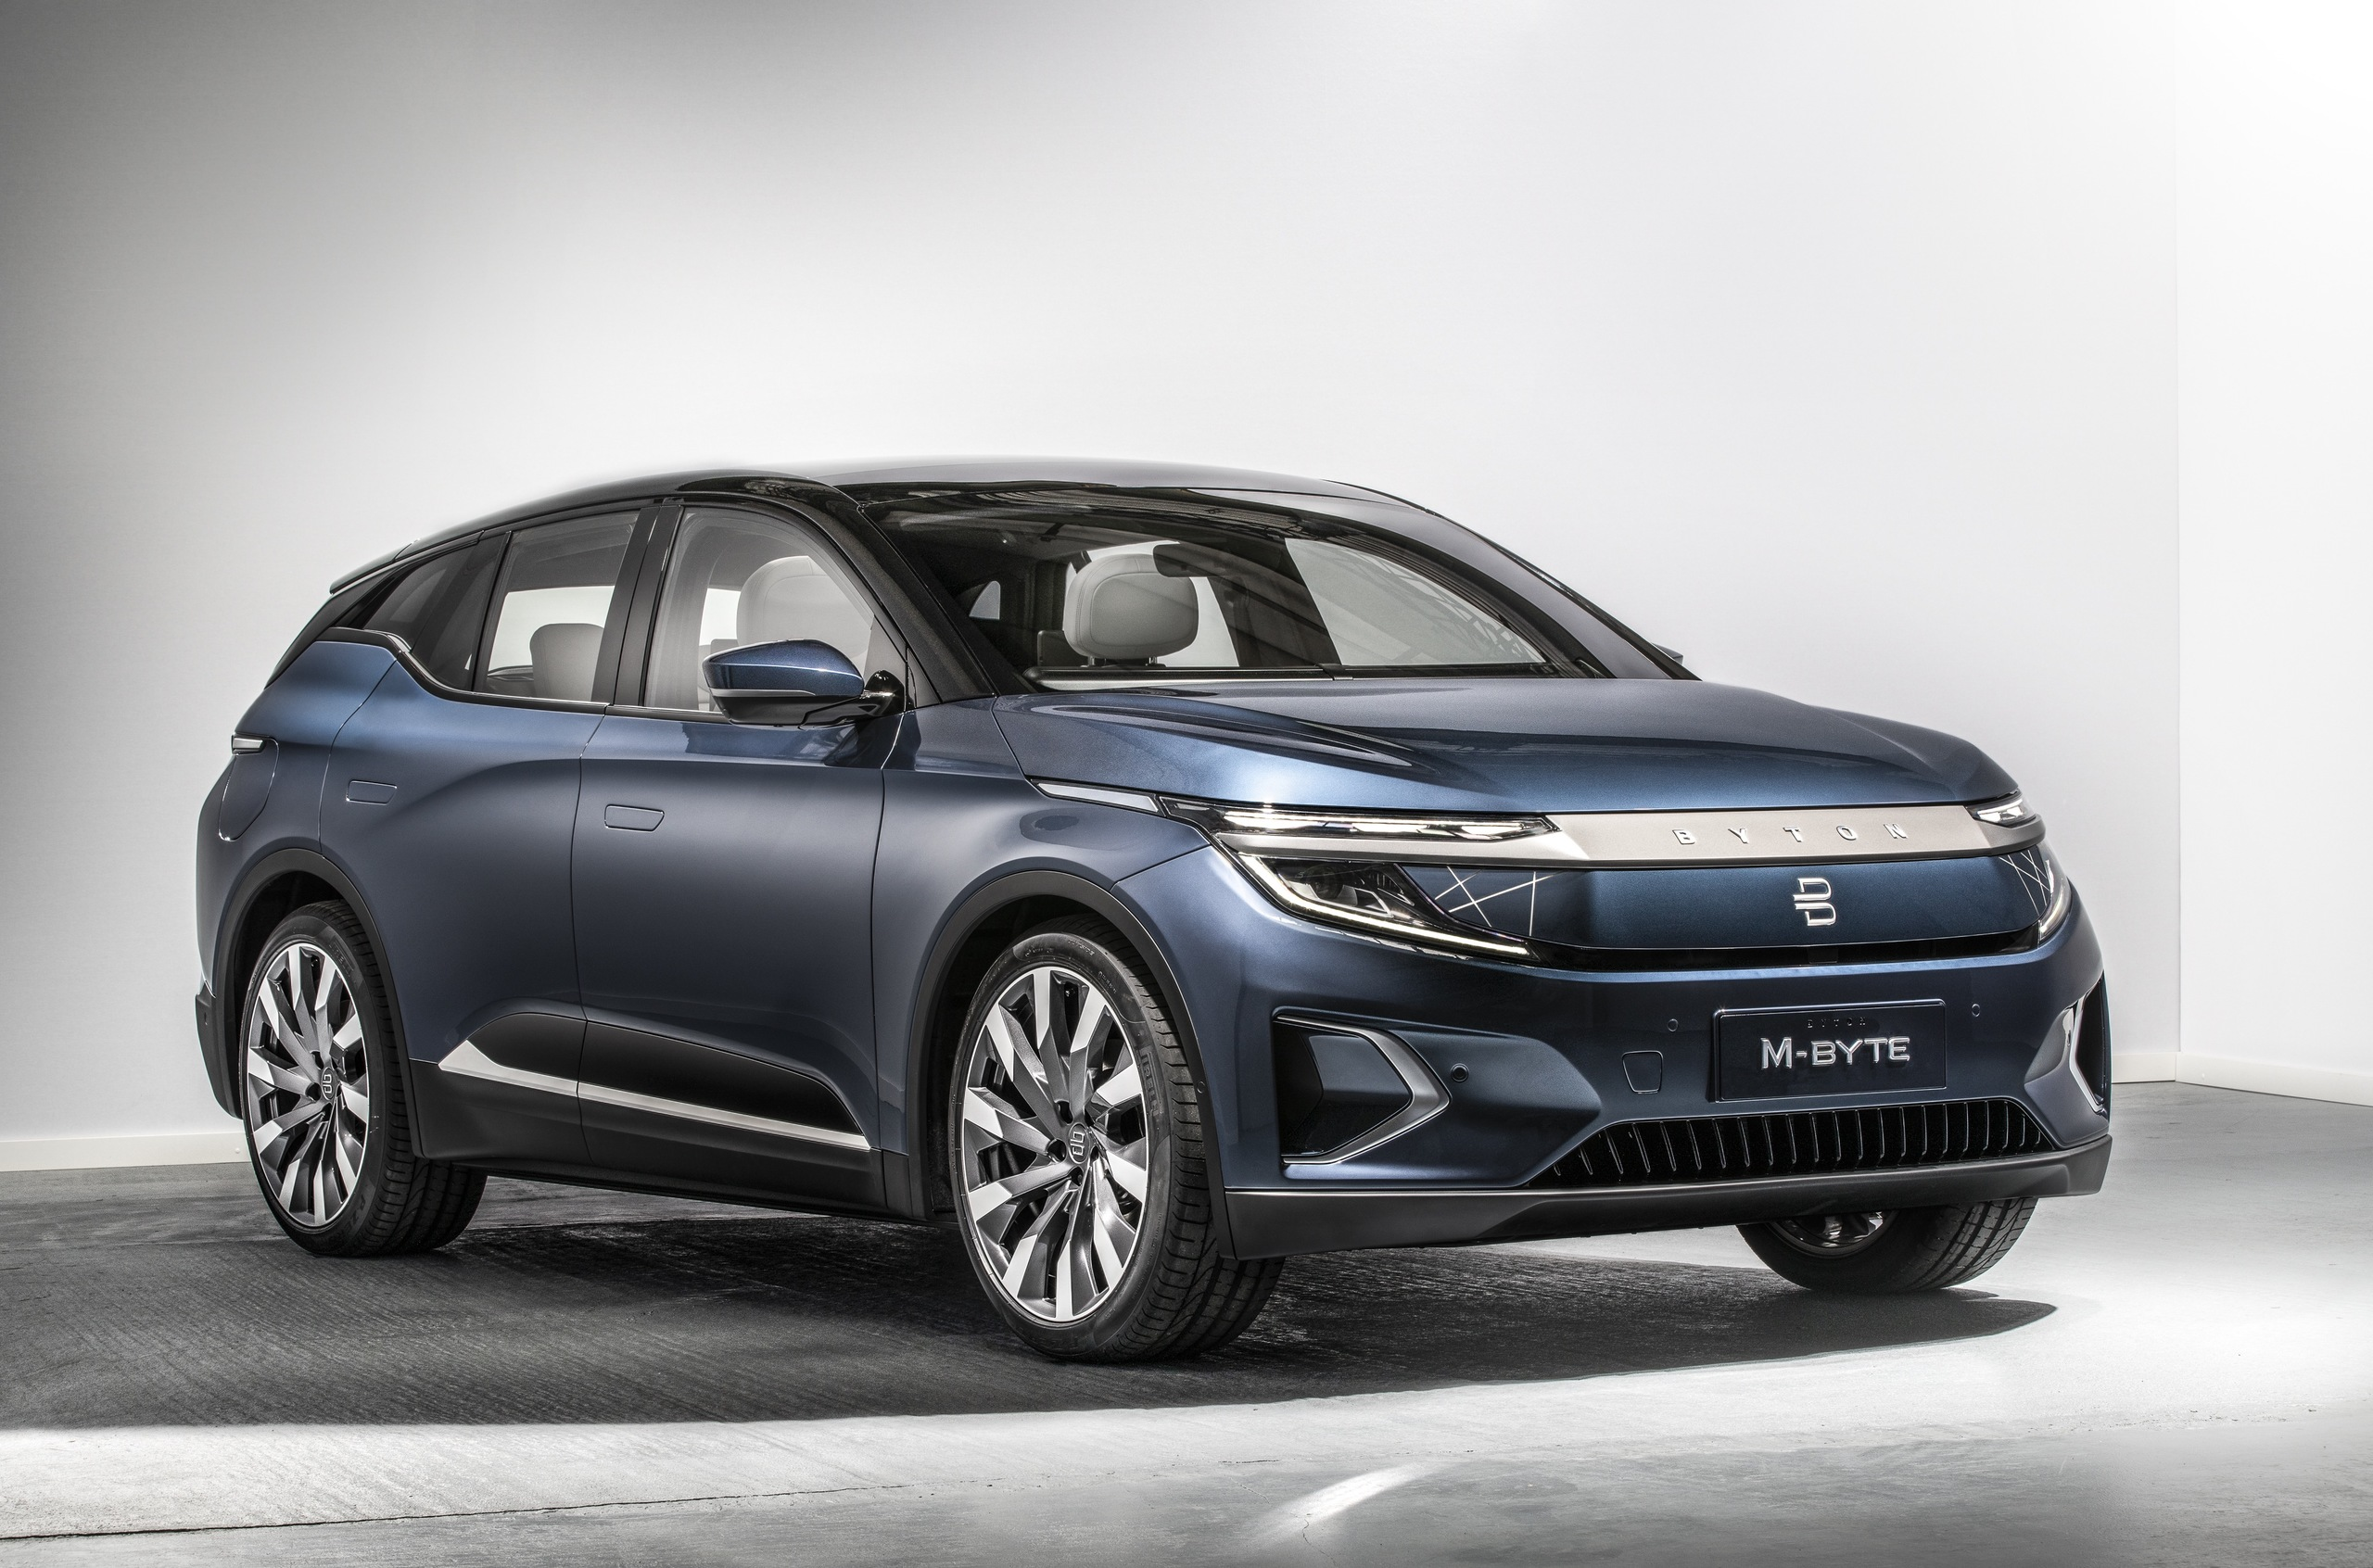 Hong Kong car manufacturer Byton has used the IAA Frankfurt 2019 as an opportunity to showcase its first production vehicle: an electric SUV called the M-Byte. Pre-ordering will open in early 2020, and the prices are going to start from €45,000.